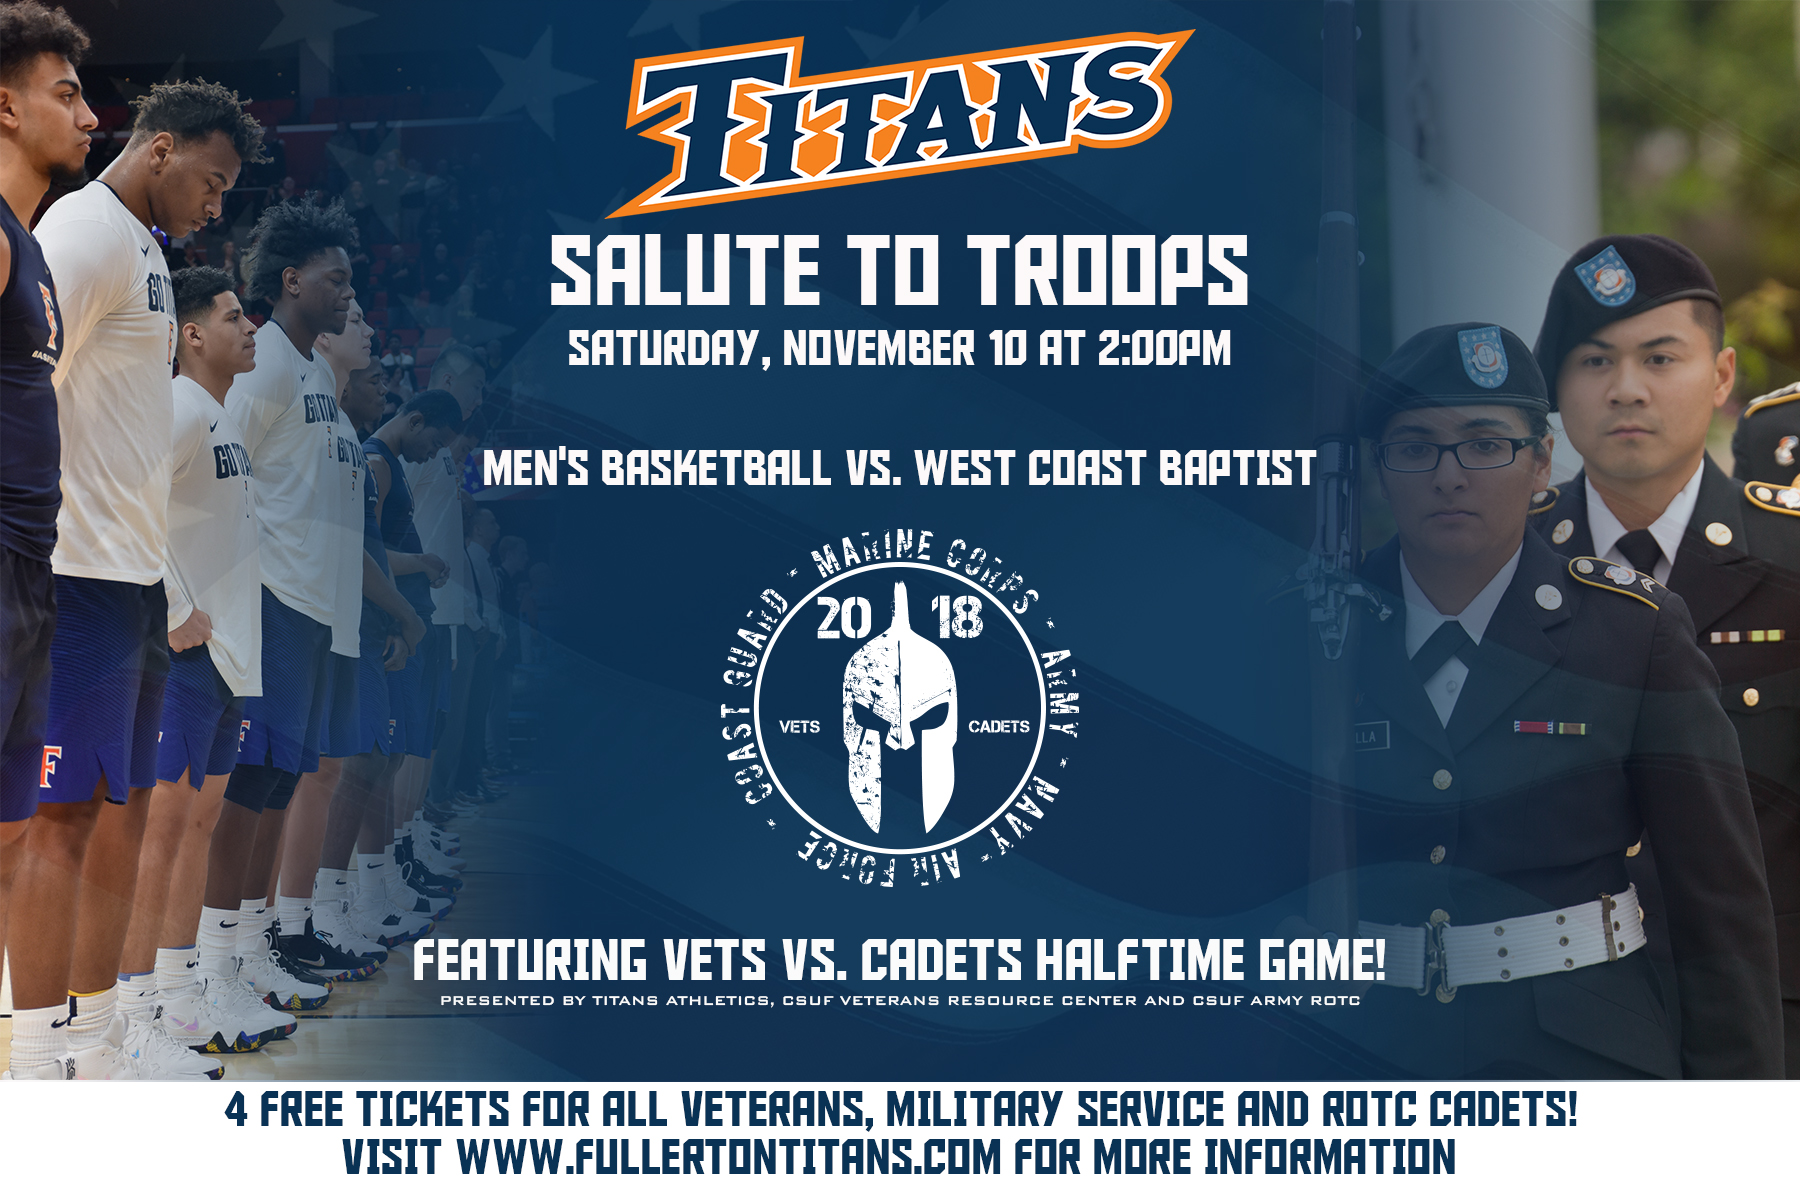 Titans Salute to Troops at MBB Matchup Against West Coast Baptist